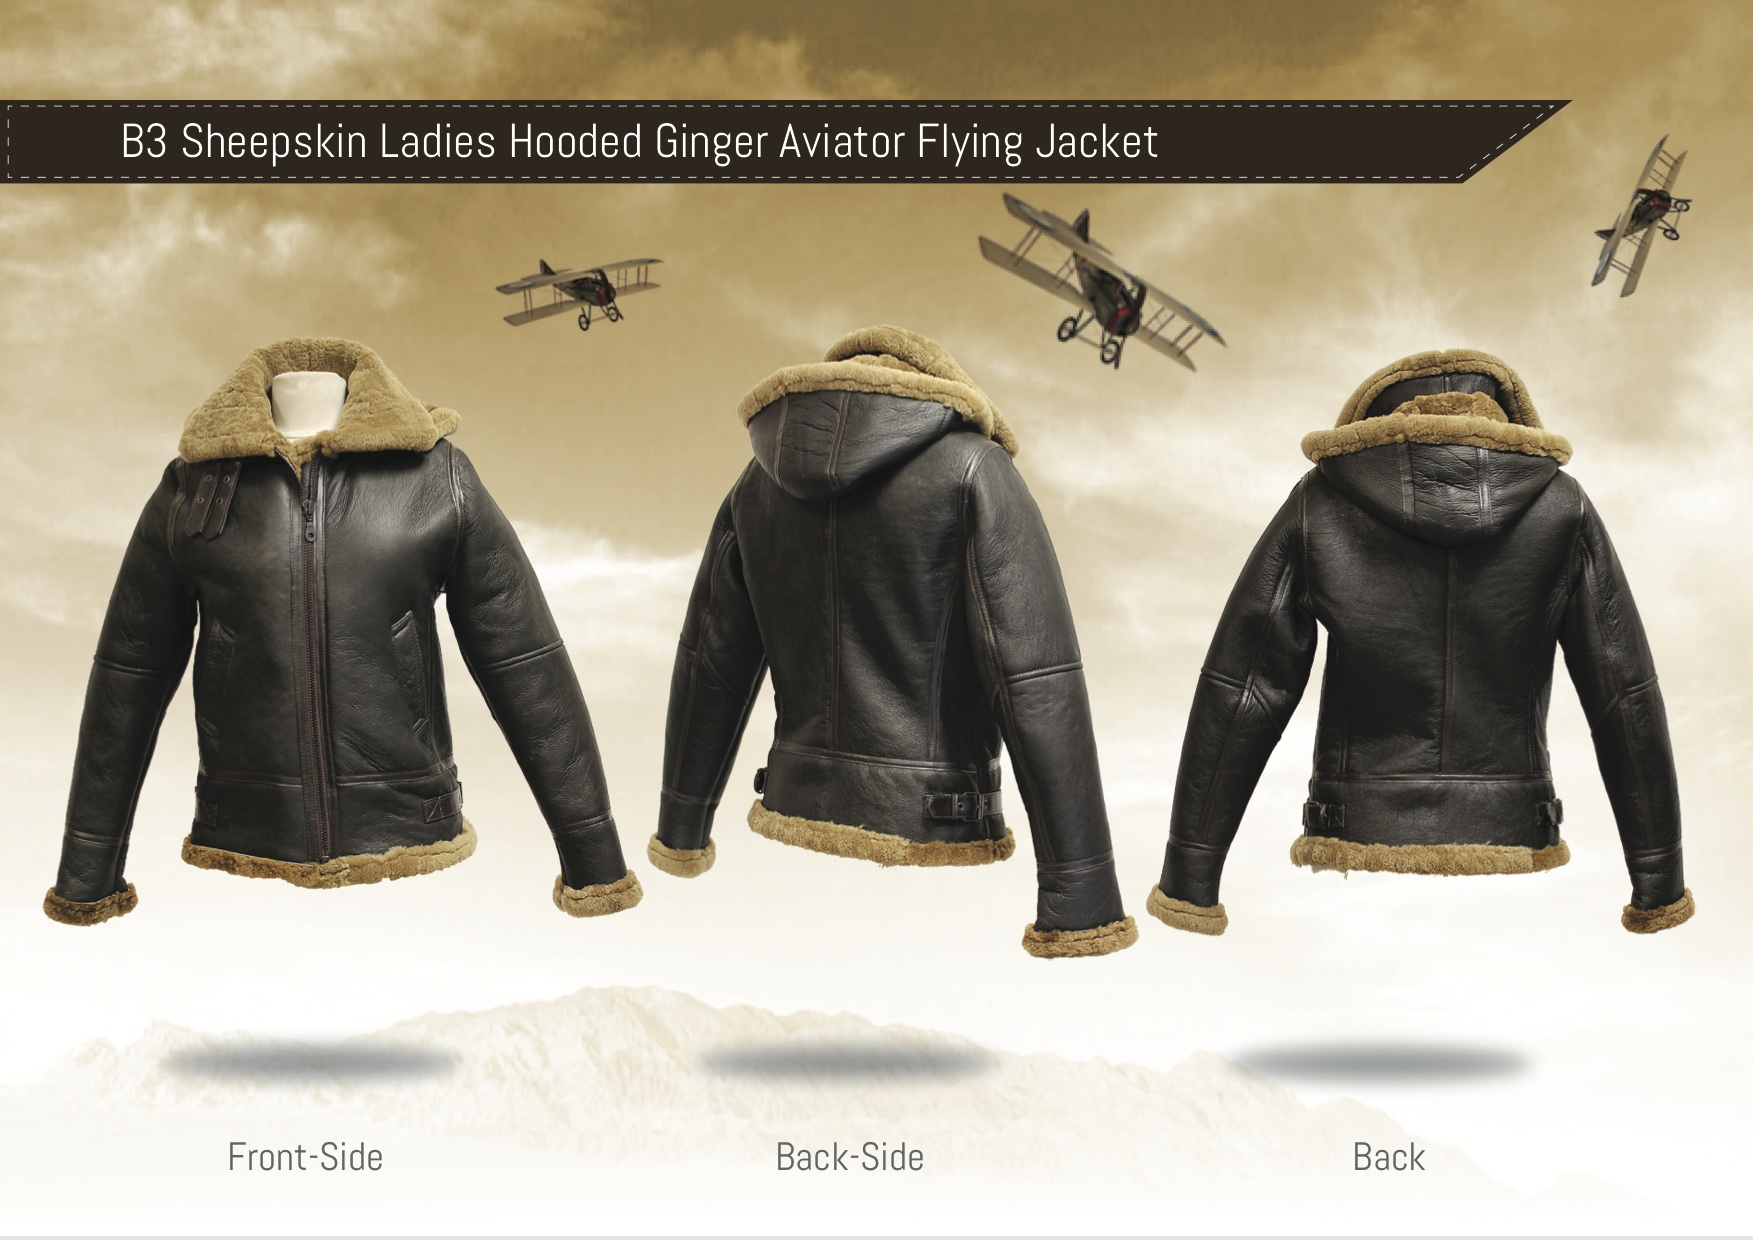 B3 Sheepskin Ladies Hooded Ginger Aviator Flying Jacket | Leather ...